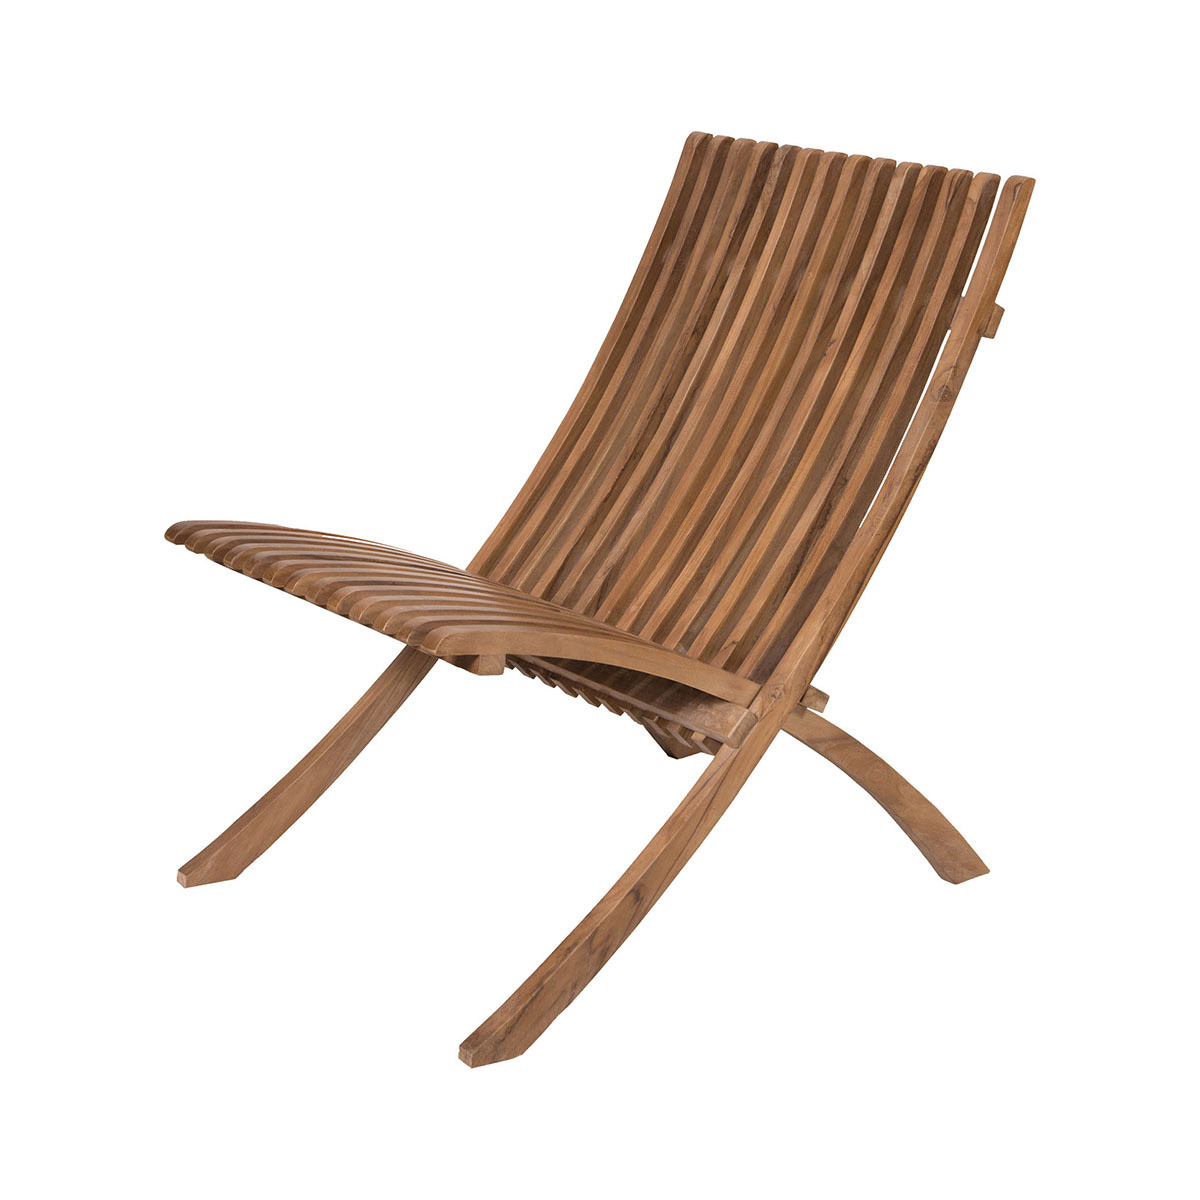 Details About Guildmaster 6917508Et Teak Euro Teak Oil Outdoor Seating Throughout Latest 2 Person Light Teak Oil Wood Outdoor Swings (View 17 of 25)